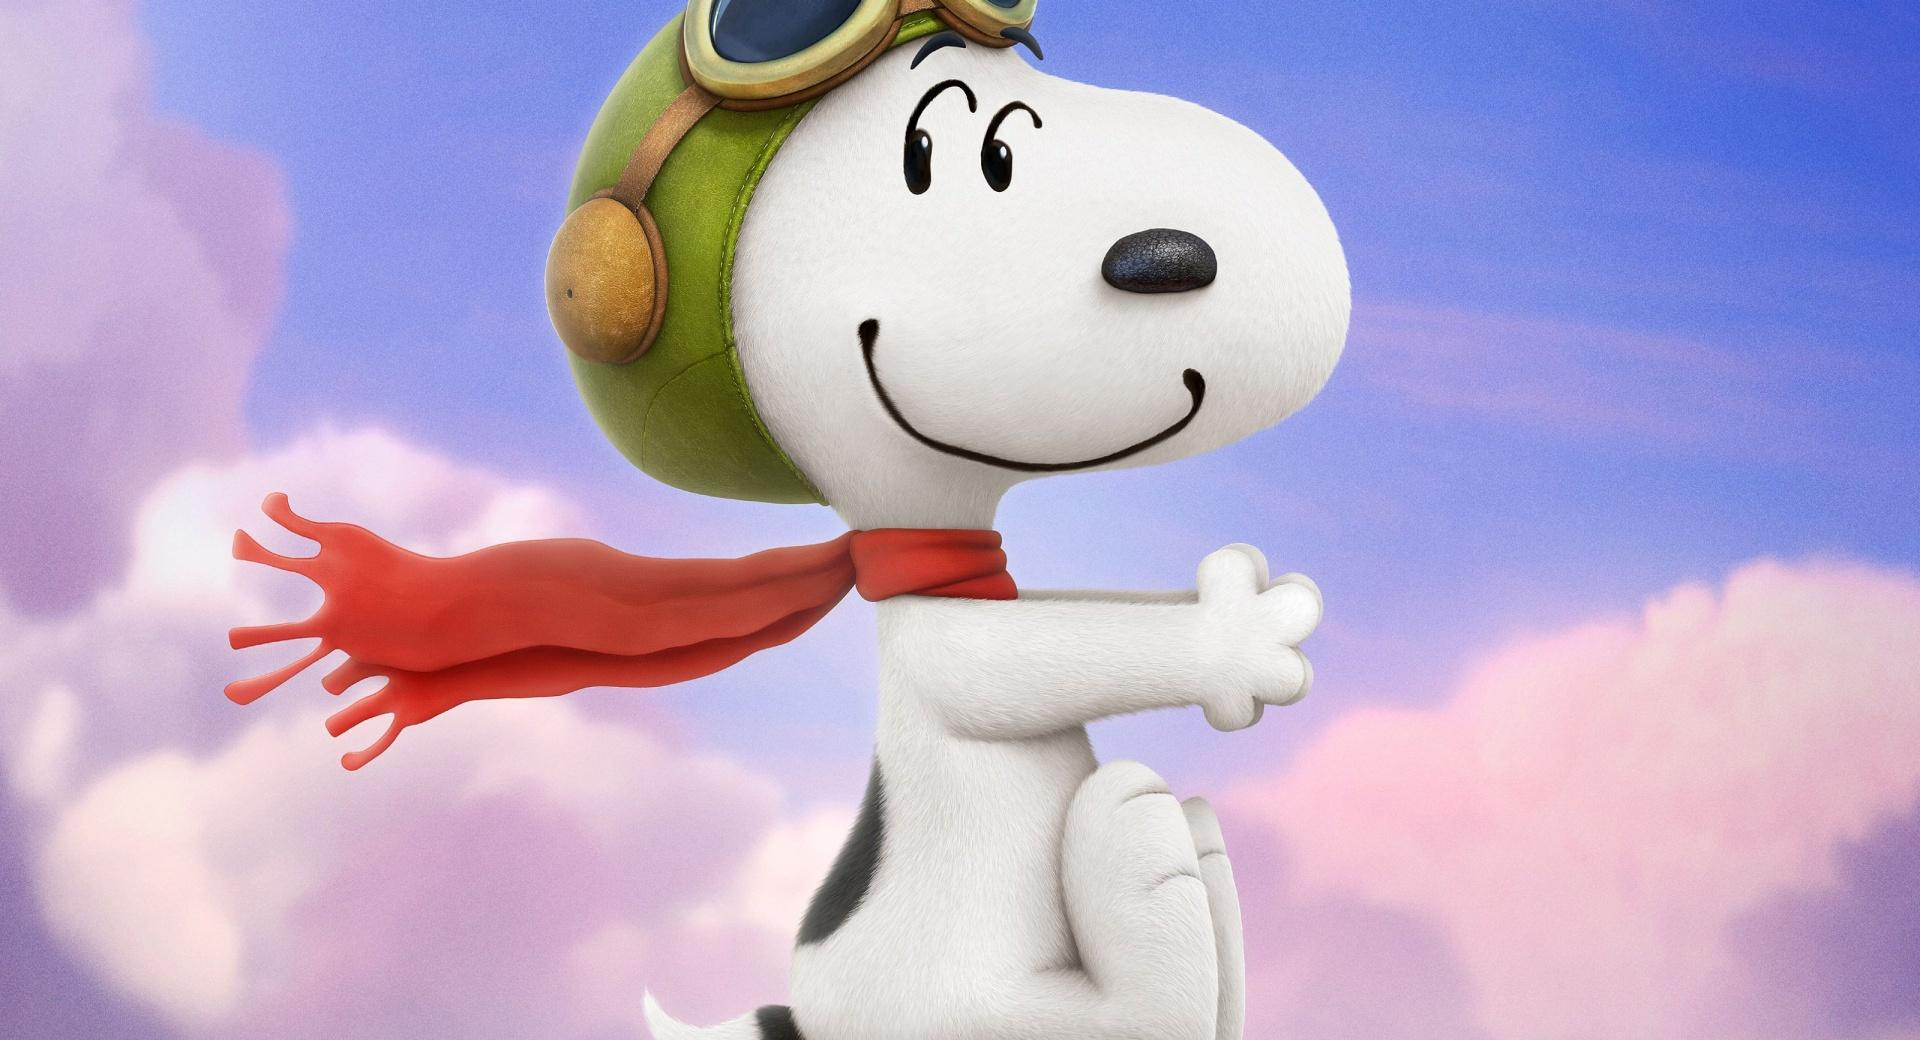 Peanuts Snoopy 2015 wallpapers HD quality